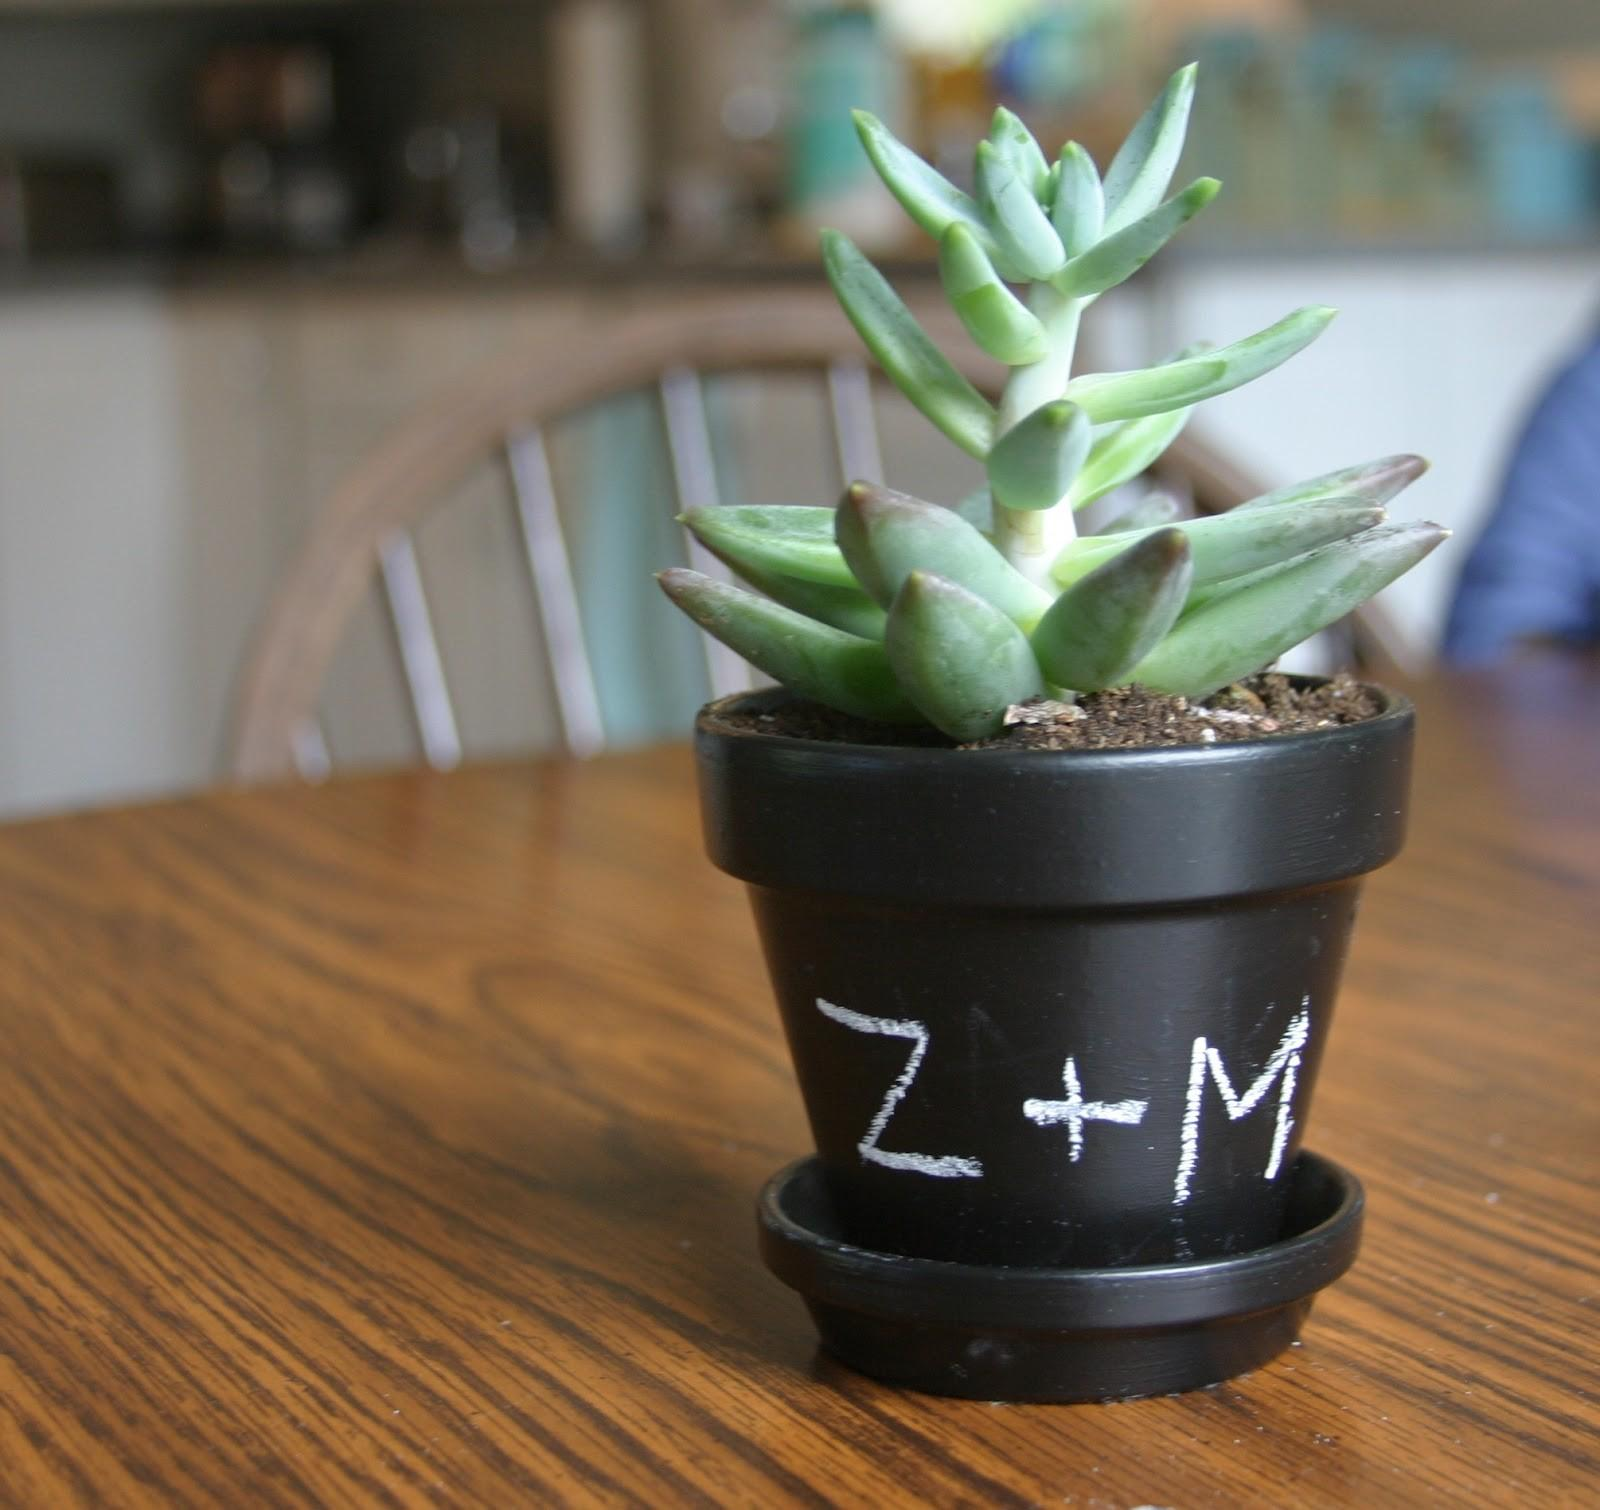 Make Bake Love Diy Chalkboard Planters